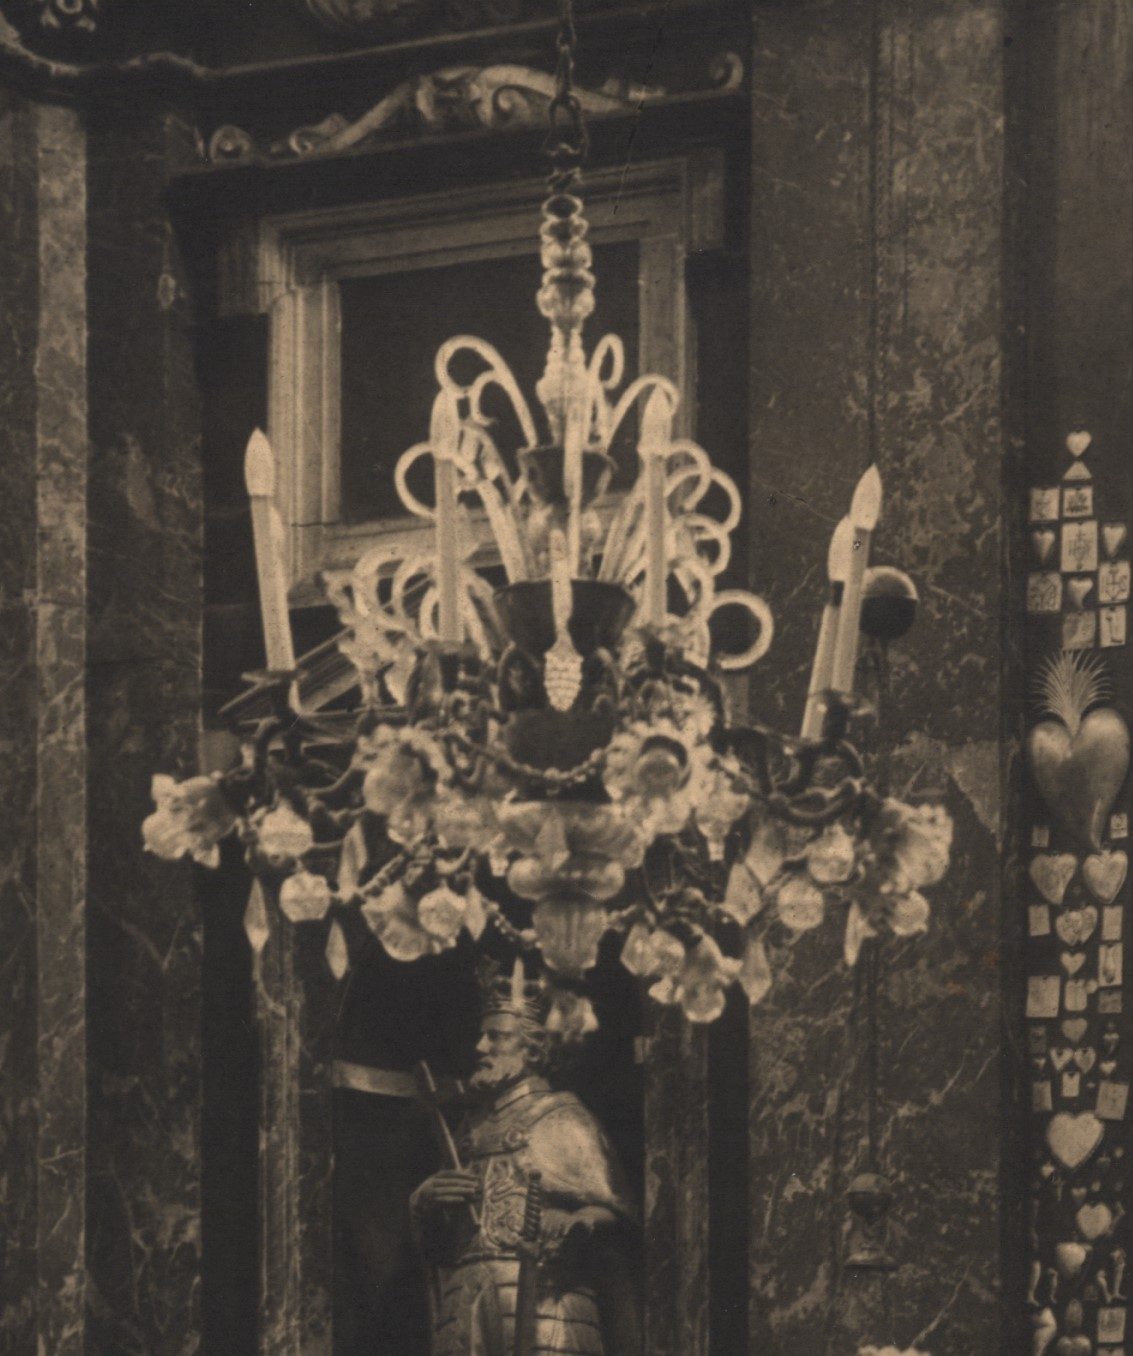 Chandelier at the Chapel of Saint Casimir of the Cathedral Basilica of Vilnius. Fragment of photo by Jan Bułhak, 1931, in: Lietuvos dailės muziejus, inv. Nr. Fi-106